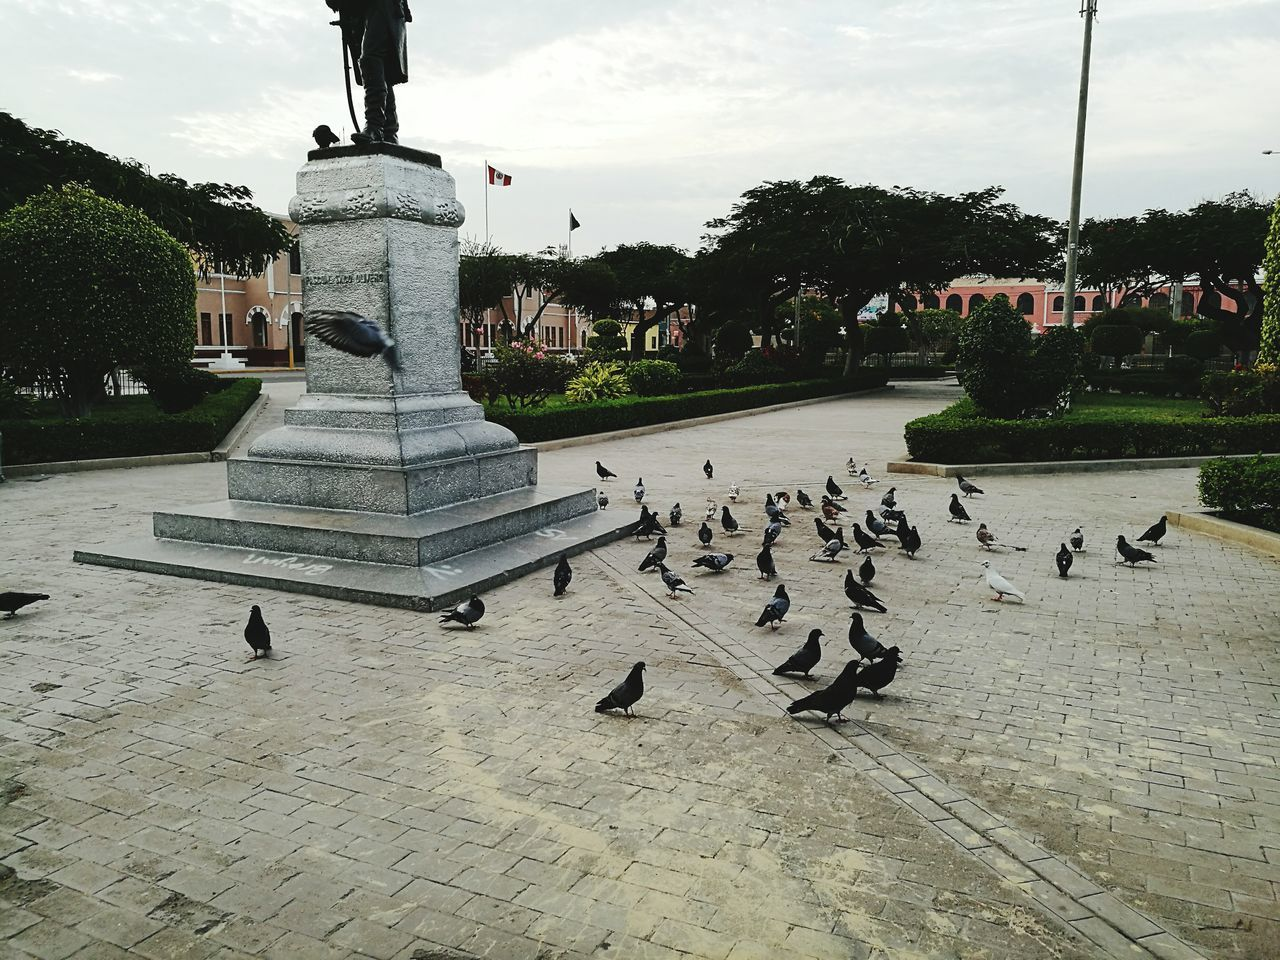 bird, animals in the wild, large group of animals, animal themes, sky, outdoors, day, tree, animal wildlife, flock of birds, cloud - sky, sculpture, no people, nature, statue, architecture, water